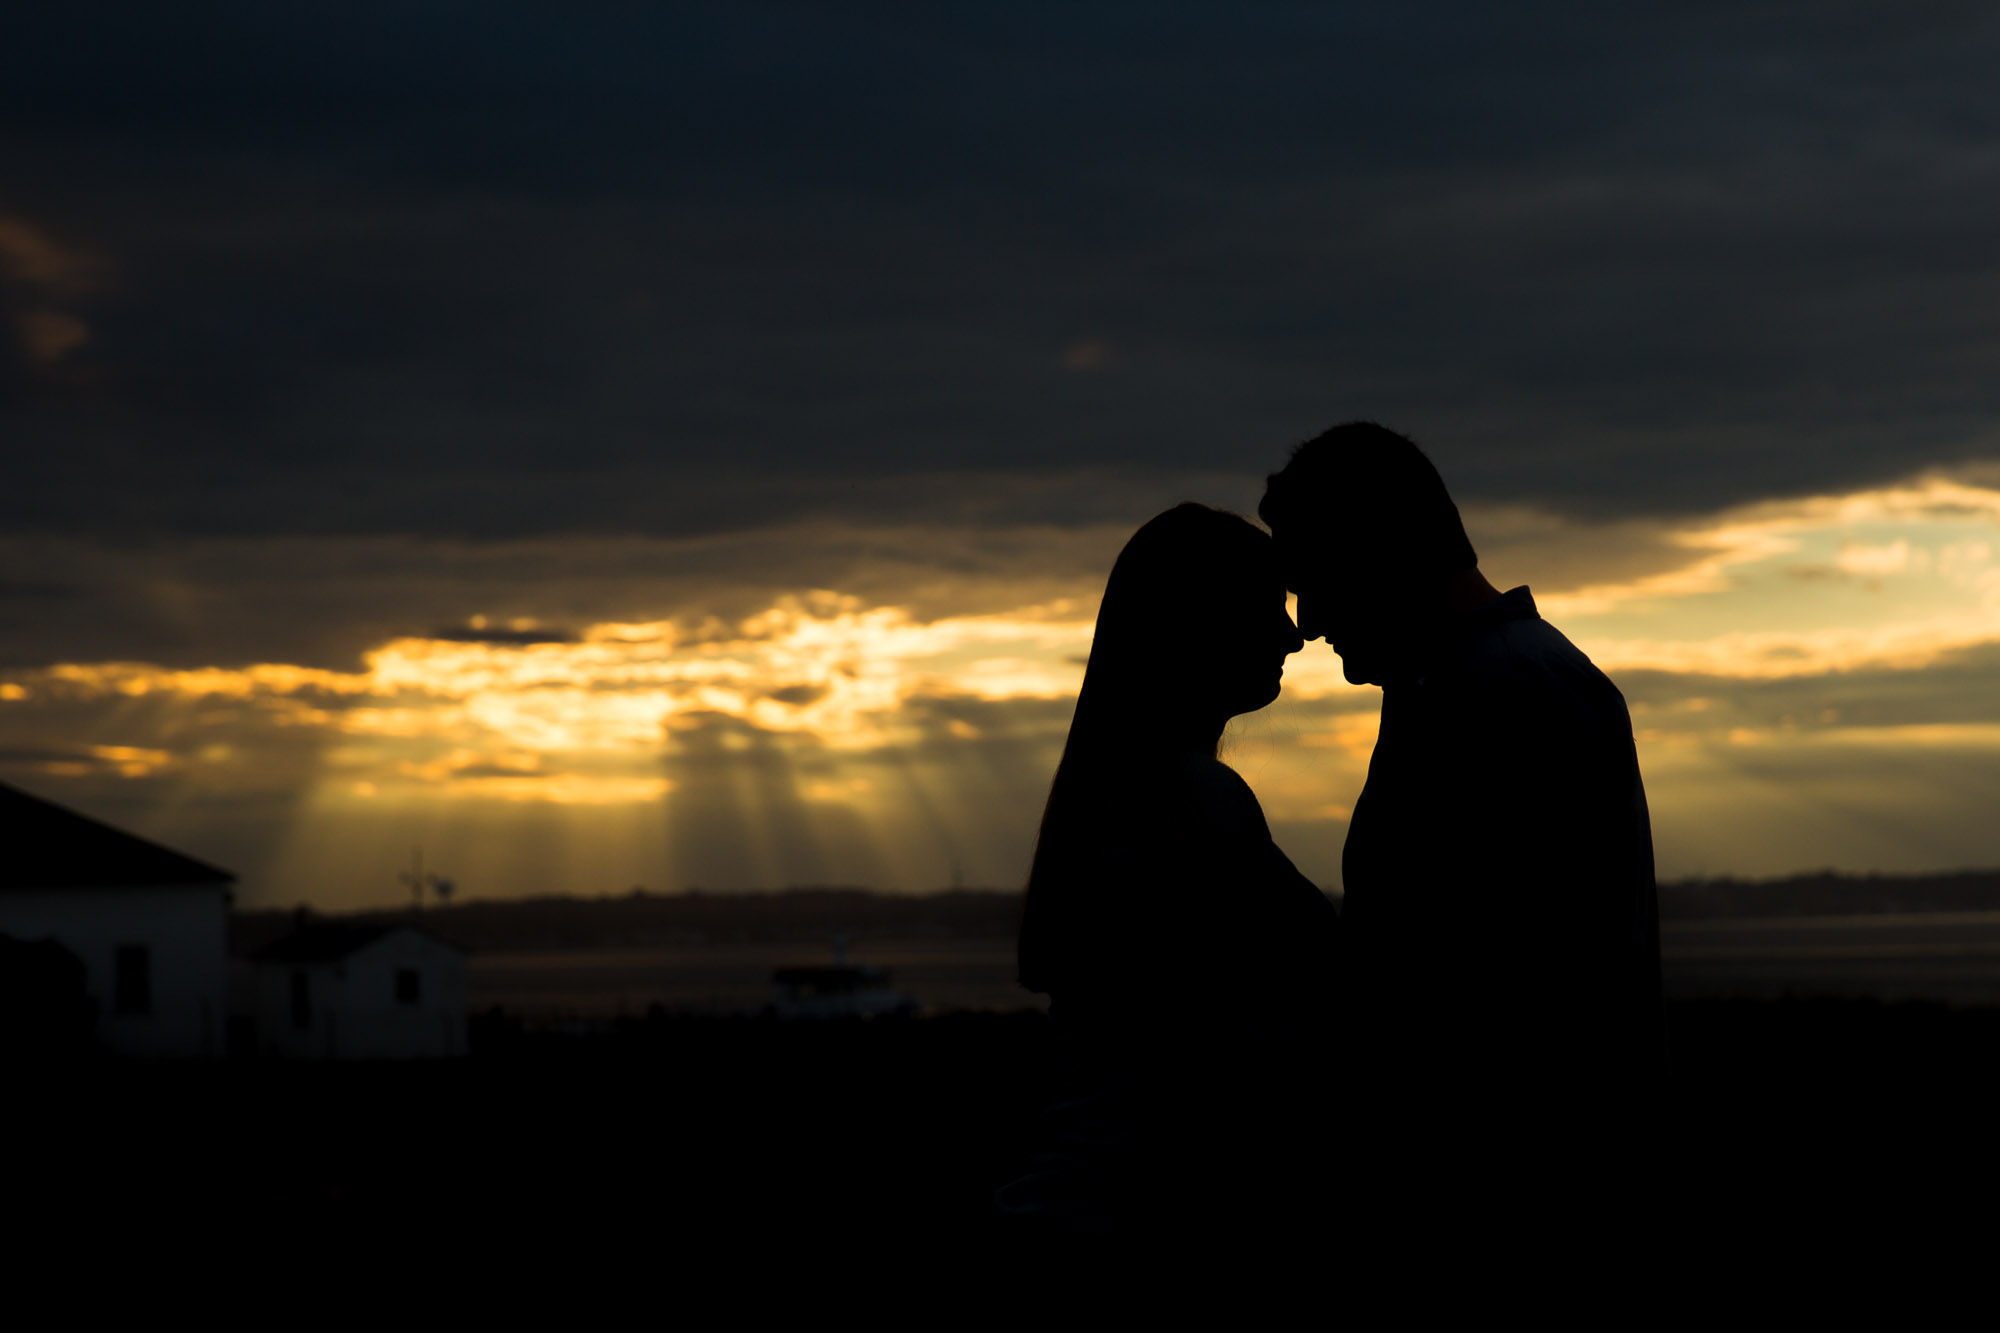 boston-wedding-photographer-26-north-studios-engagement-silhouette-plum island.jpg